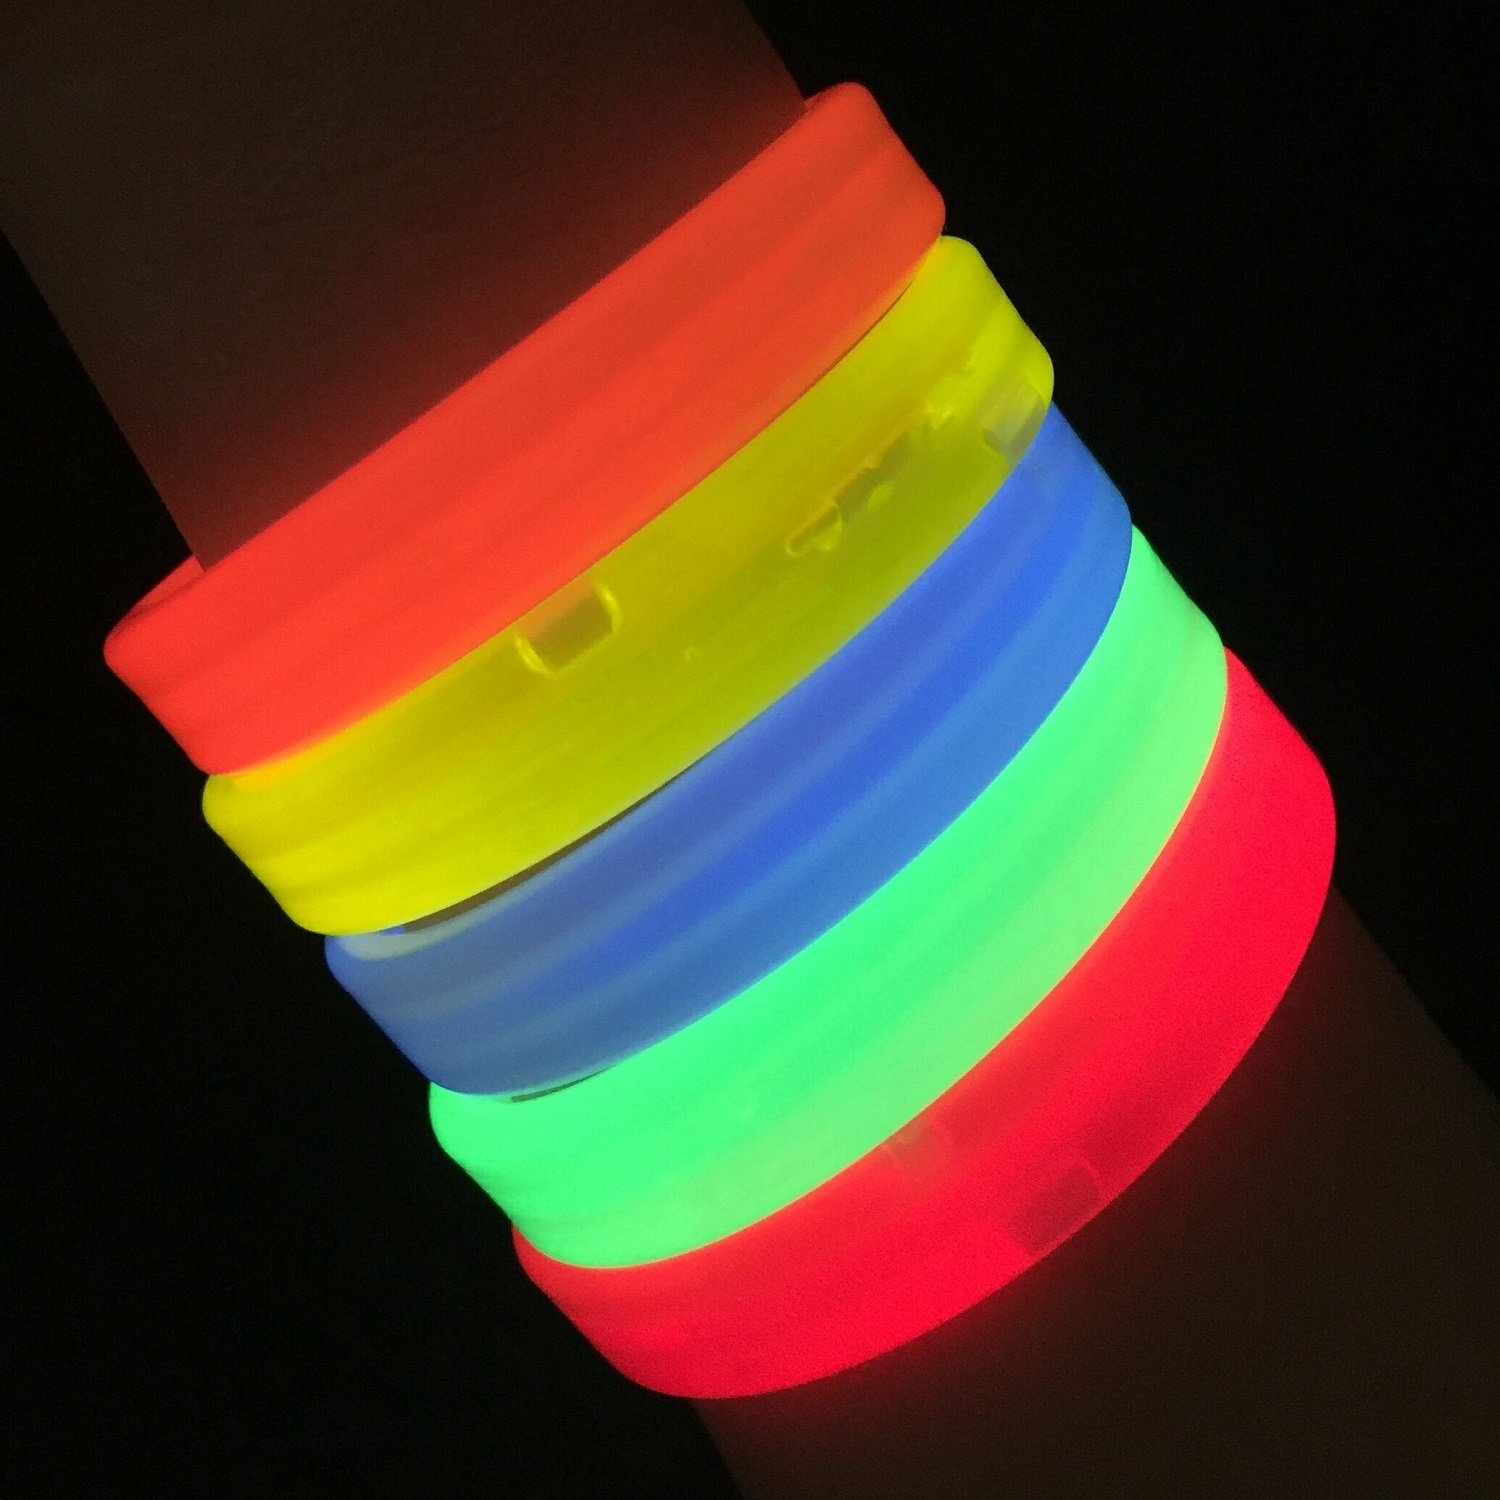 """Glow Sticks Bulk Wholesale Wristbands, 25 9"""" Triple-Wide Glow Bracelets, Assorted Bright Colors, Glow 8-12 Hrs, 25 Connectors Included, Glow Party Favors Supplies, Sturdy Packaging, GlowWithUs Brand"""